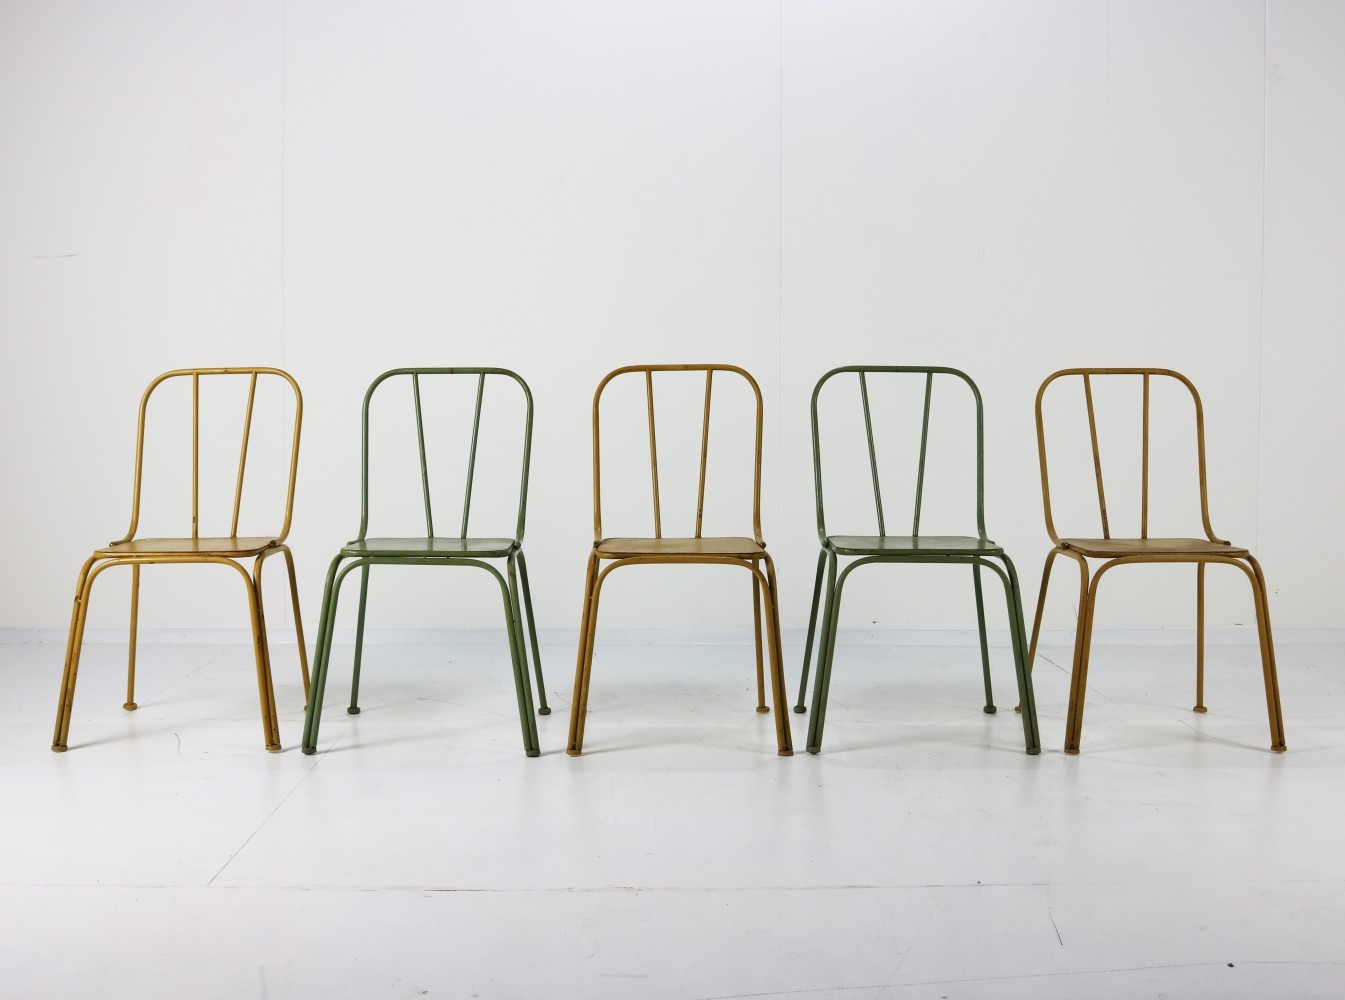 green metal bistro chairs hairdresser chair dimensions set of 5 yellow denmark 1950s 93382 seating dining